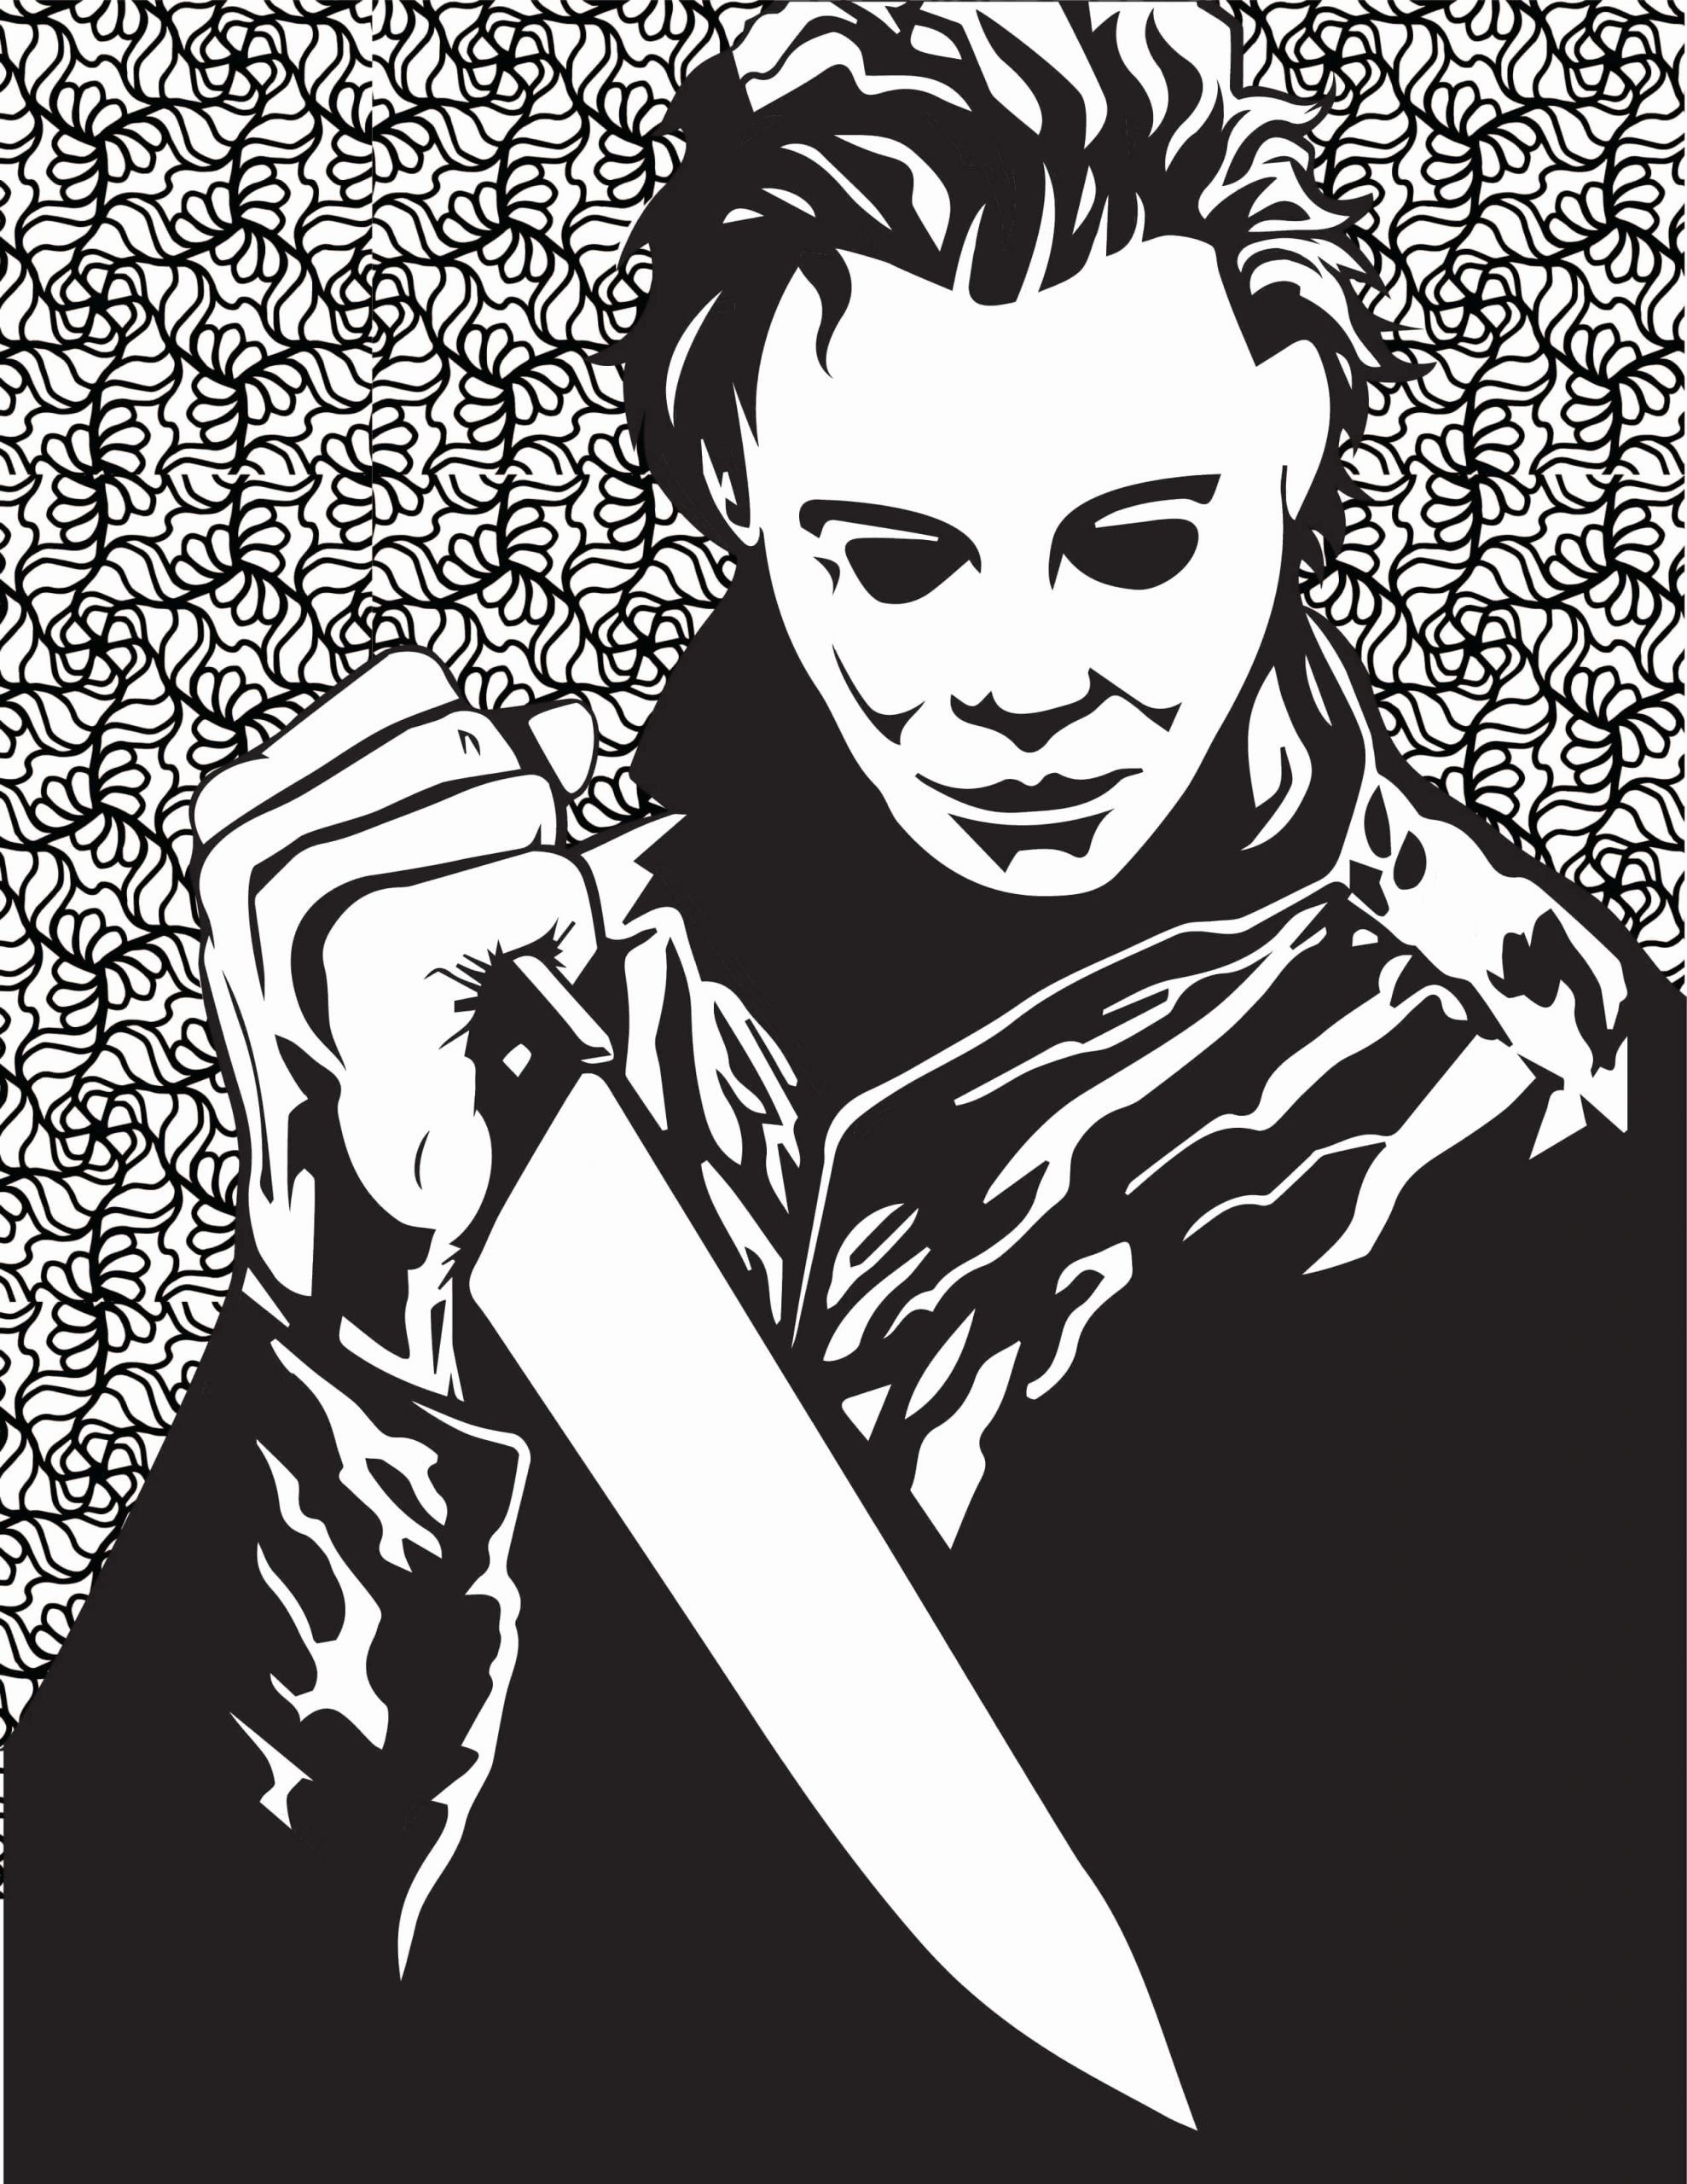 Scary Halloween Coloring Page Elegant Free Horror Movie Printable Coloring Pages Halloween Coloring Pages Michael Myers Halloween Halloween Coloring